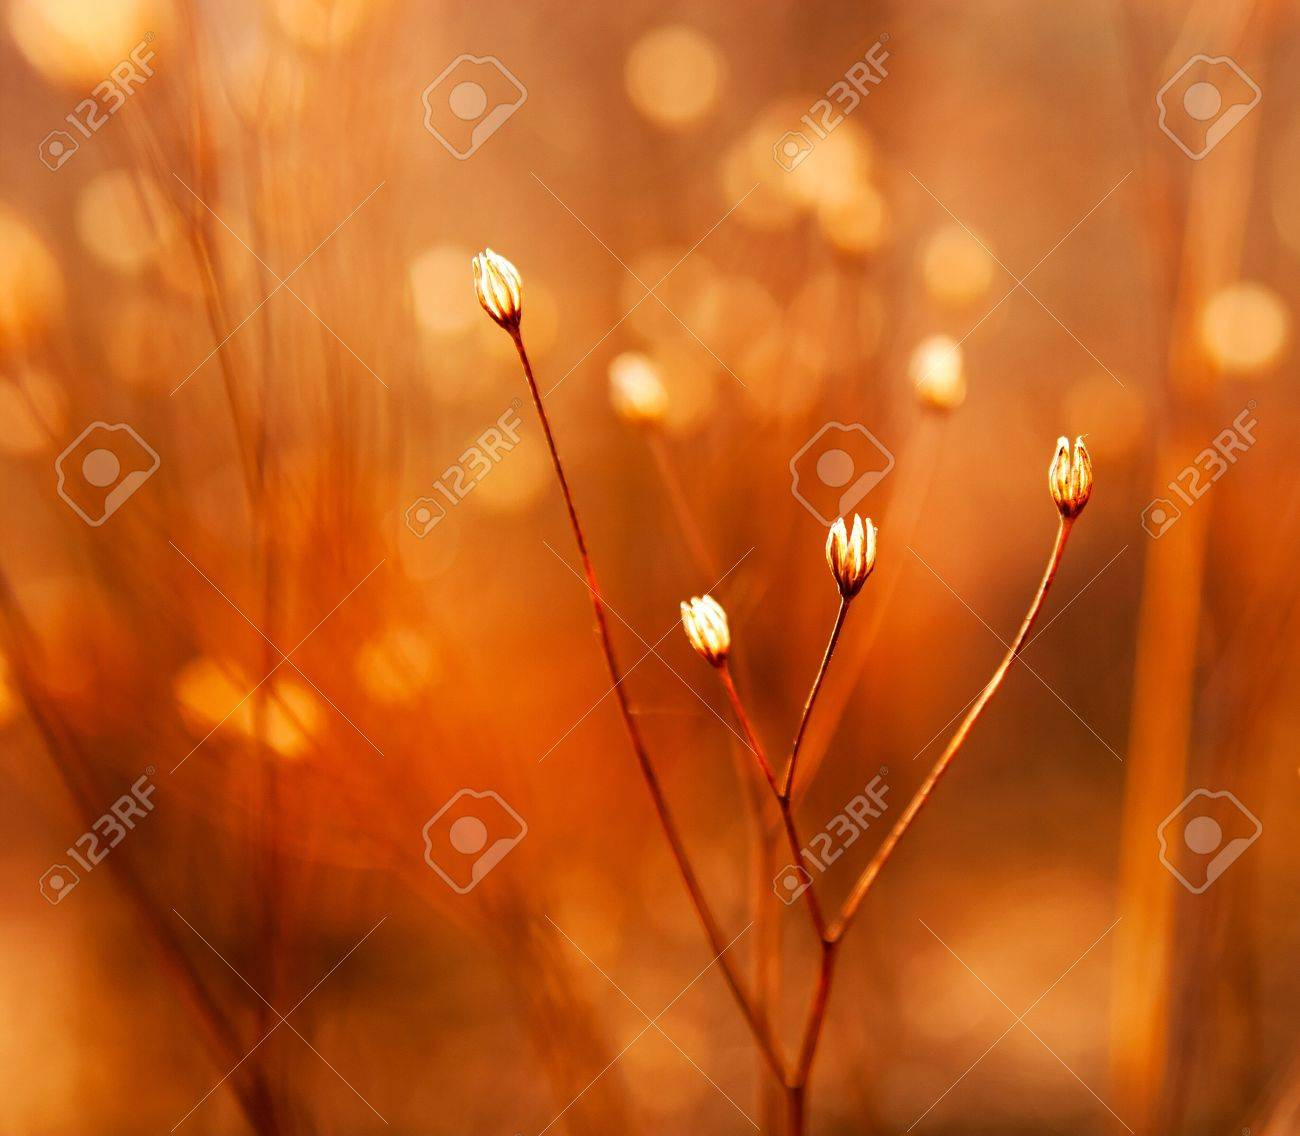 The buds of weed in sunshine - 21223176